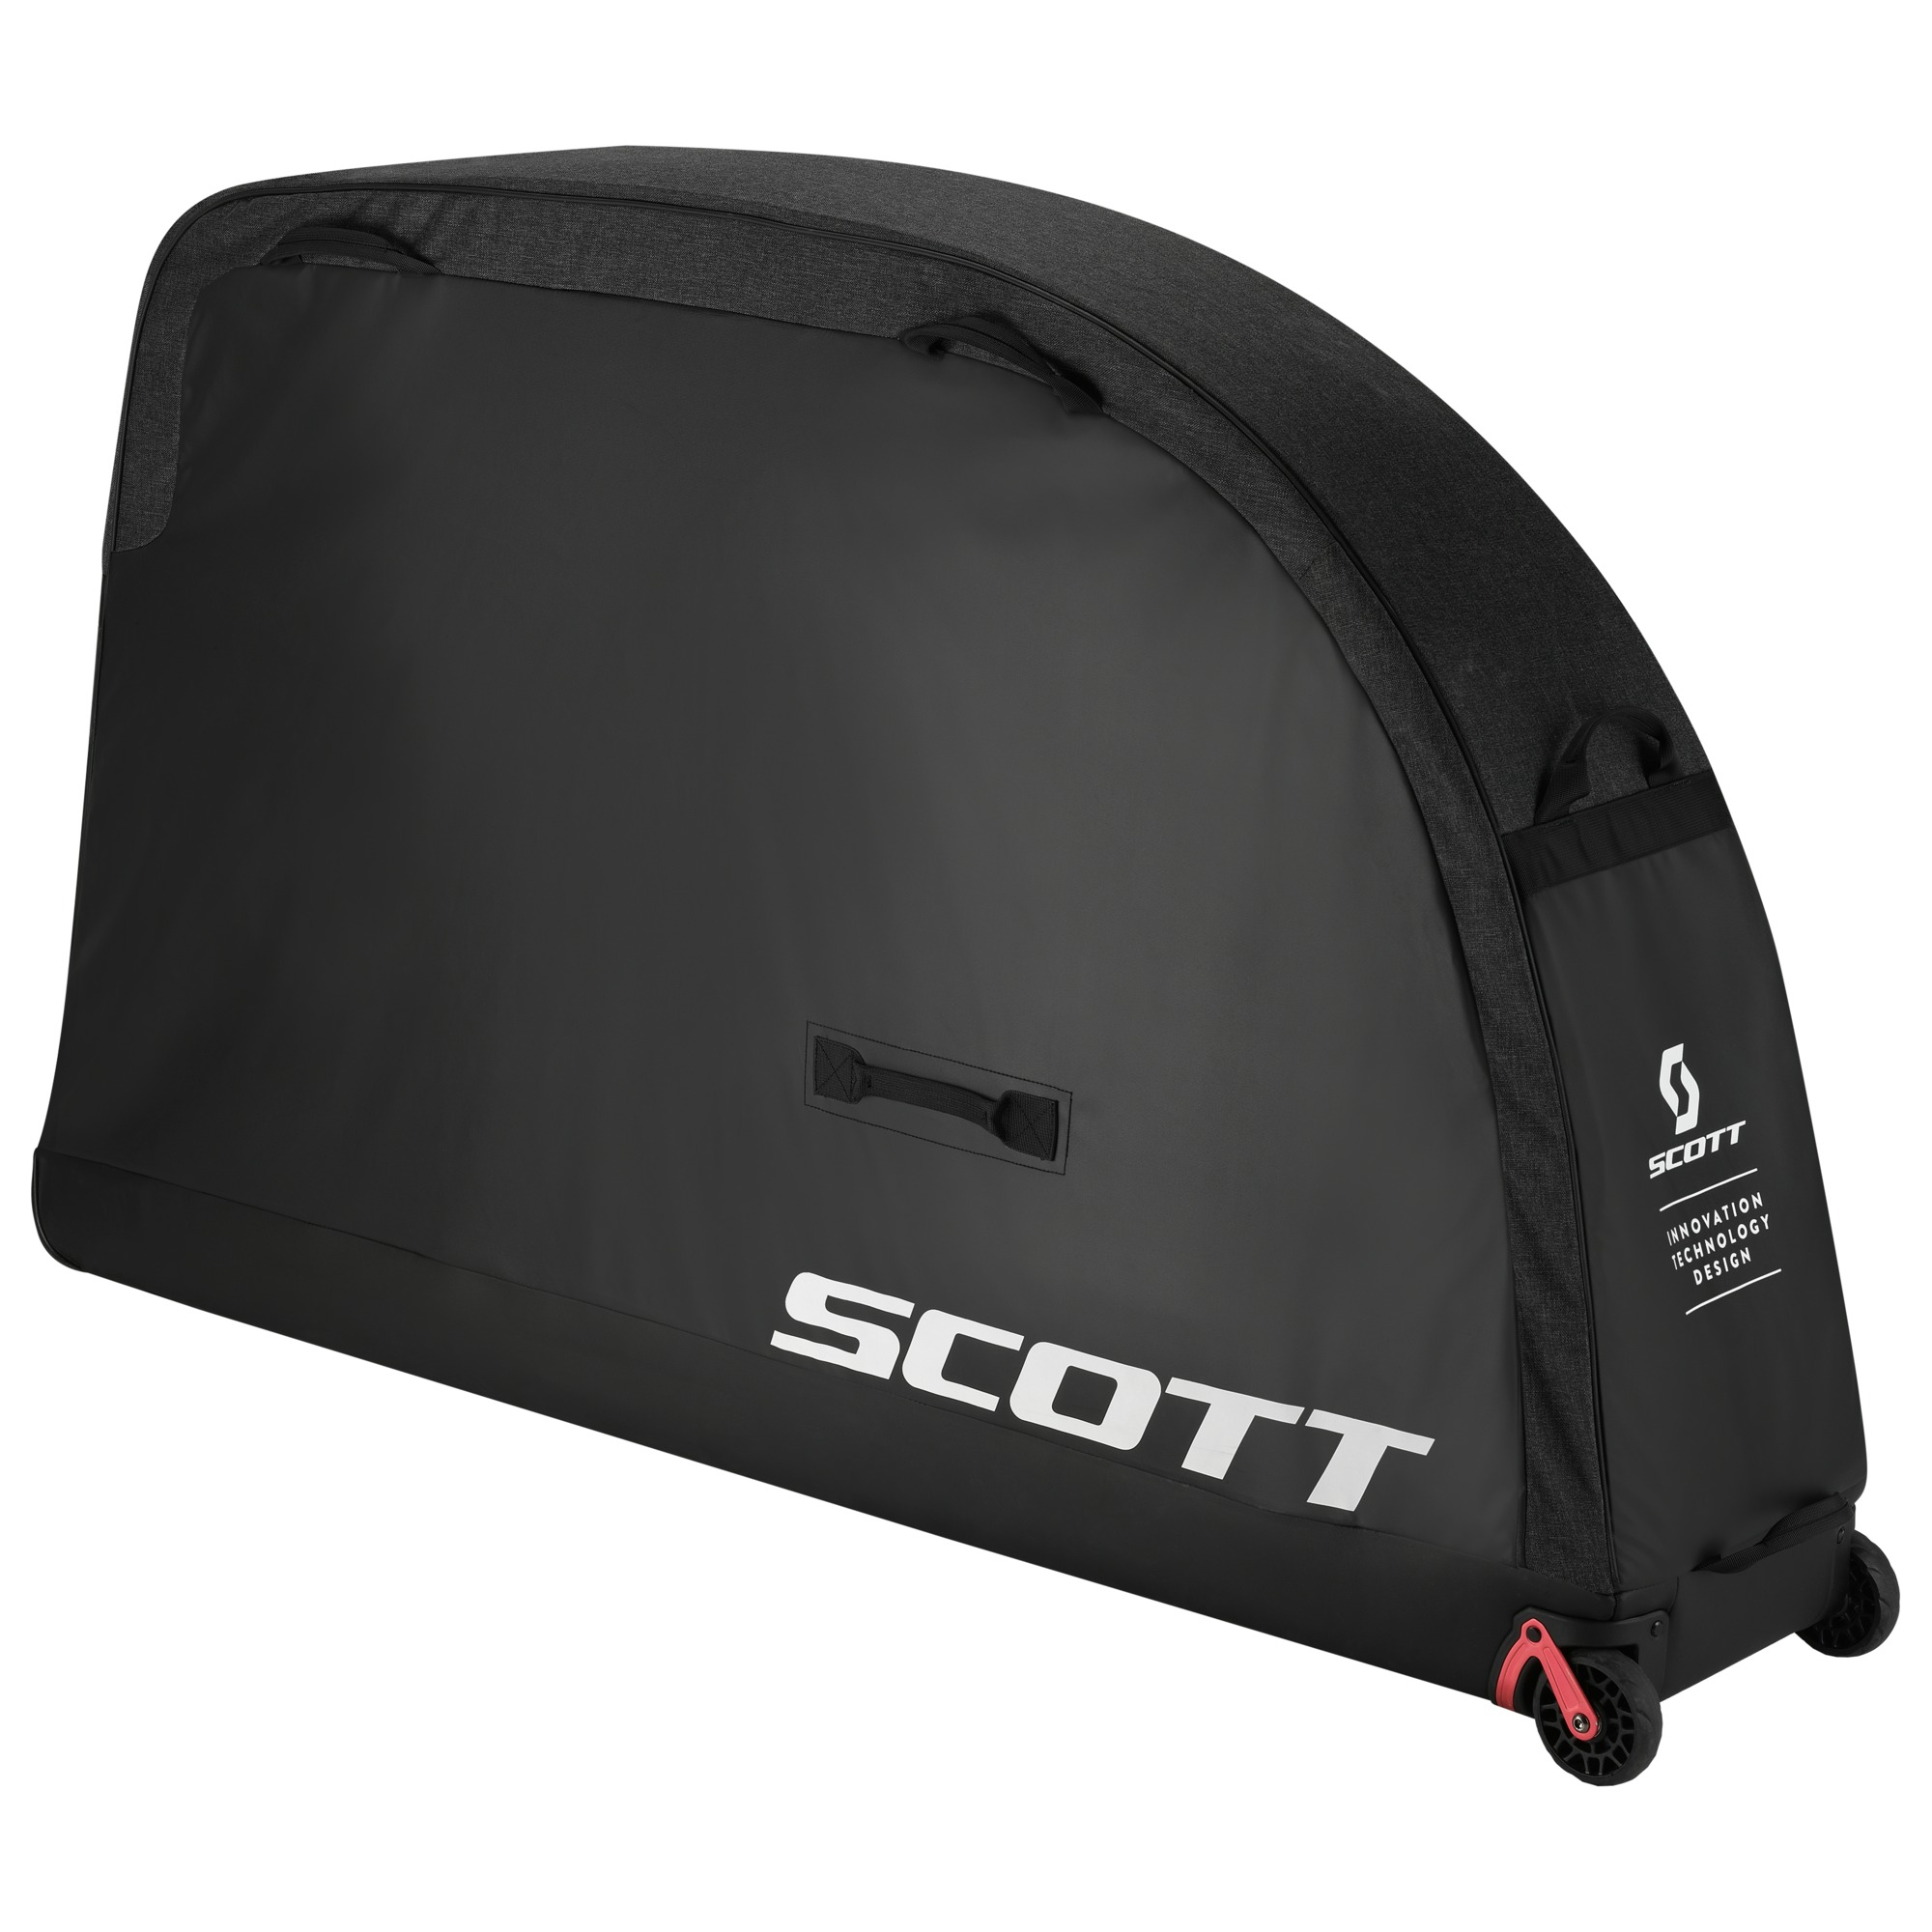 SCOTT Premium Bike Transporttasche 2.0